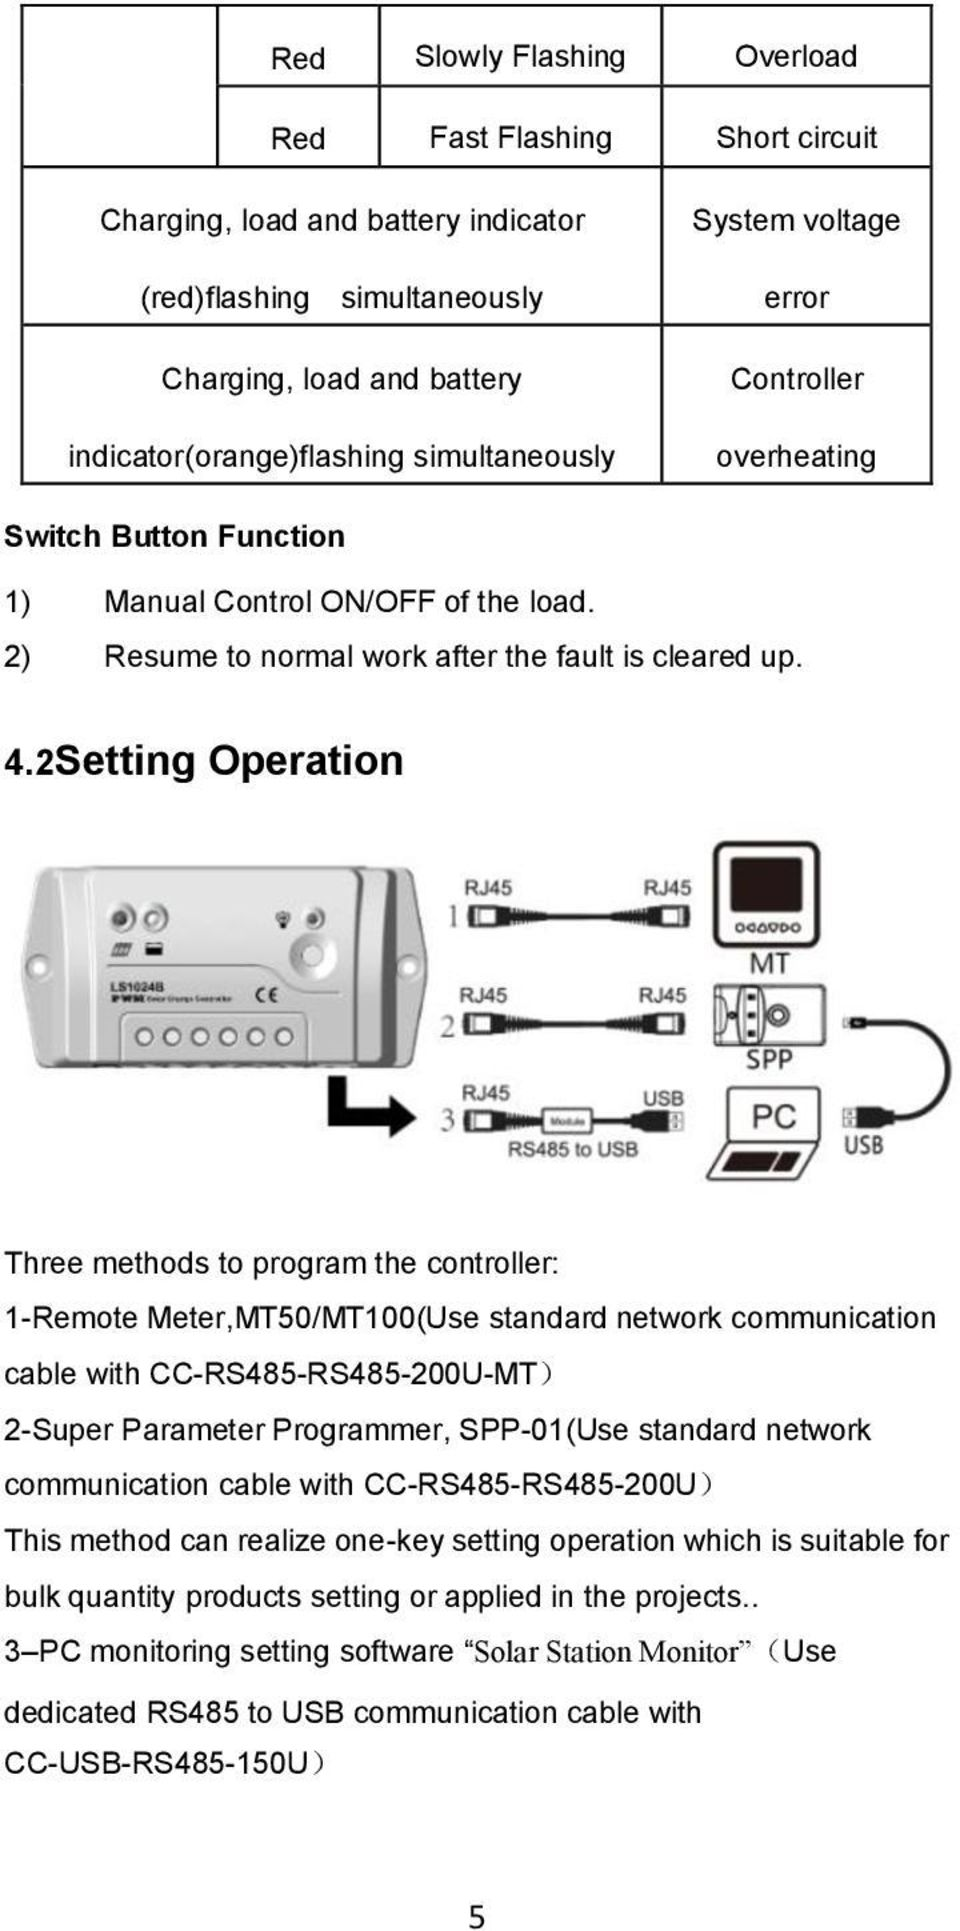 2Setting Operation Three methods to program the controller: 1-Remote Meter,MT50/MT100(Use standard network communication cable with CC-RS485-RS485-200U-MT) 2-Super Parameter Programmer, SPP-01(Use